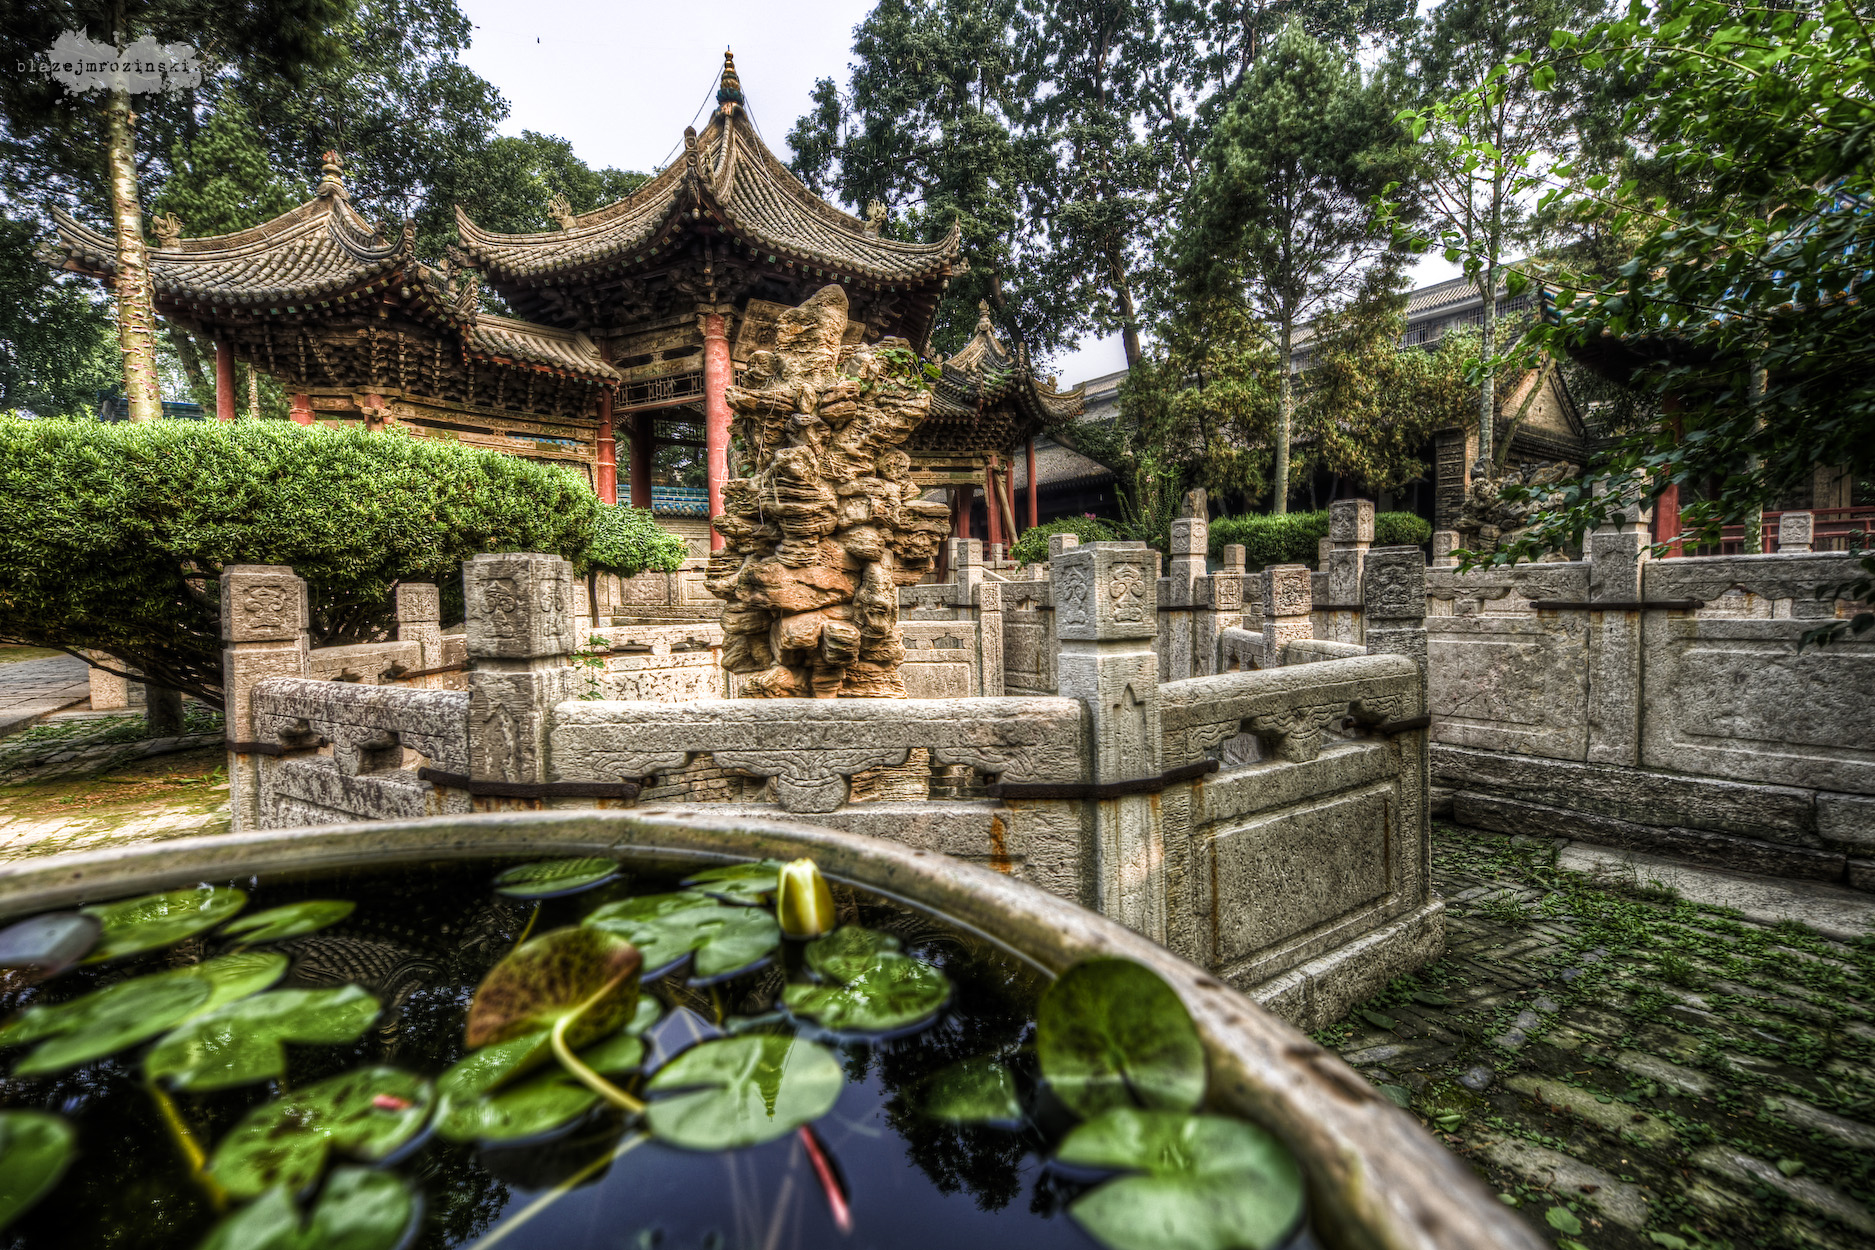 Great Mosque of Xi'an - Mosque in Xi'an - Thousand Wonders